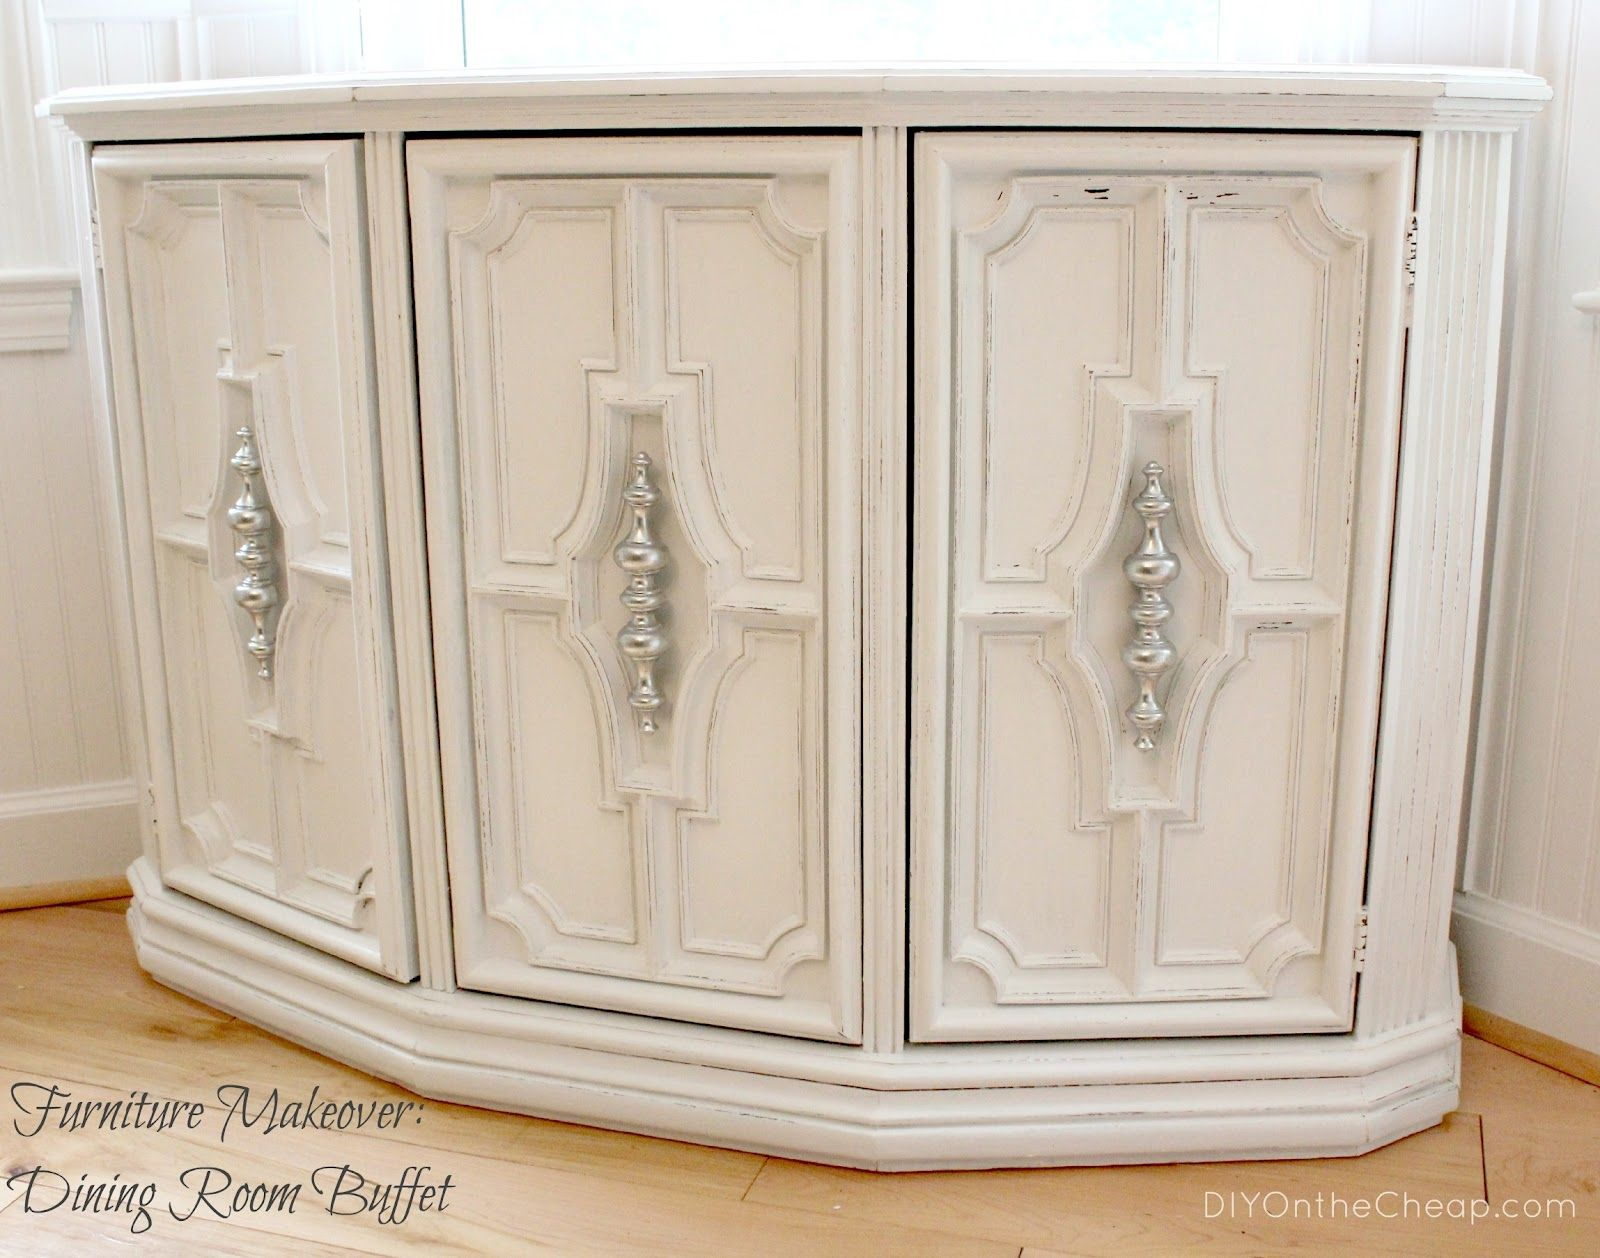 Gentil DIY On The Cheap: Furniture Makeover: Console Turned Buffet Table